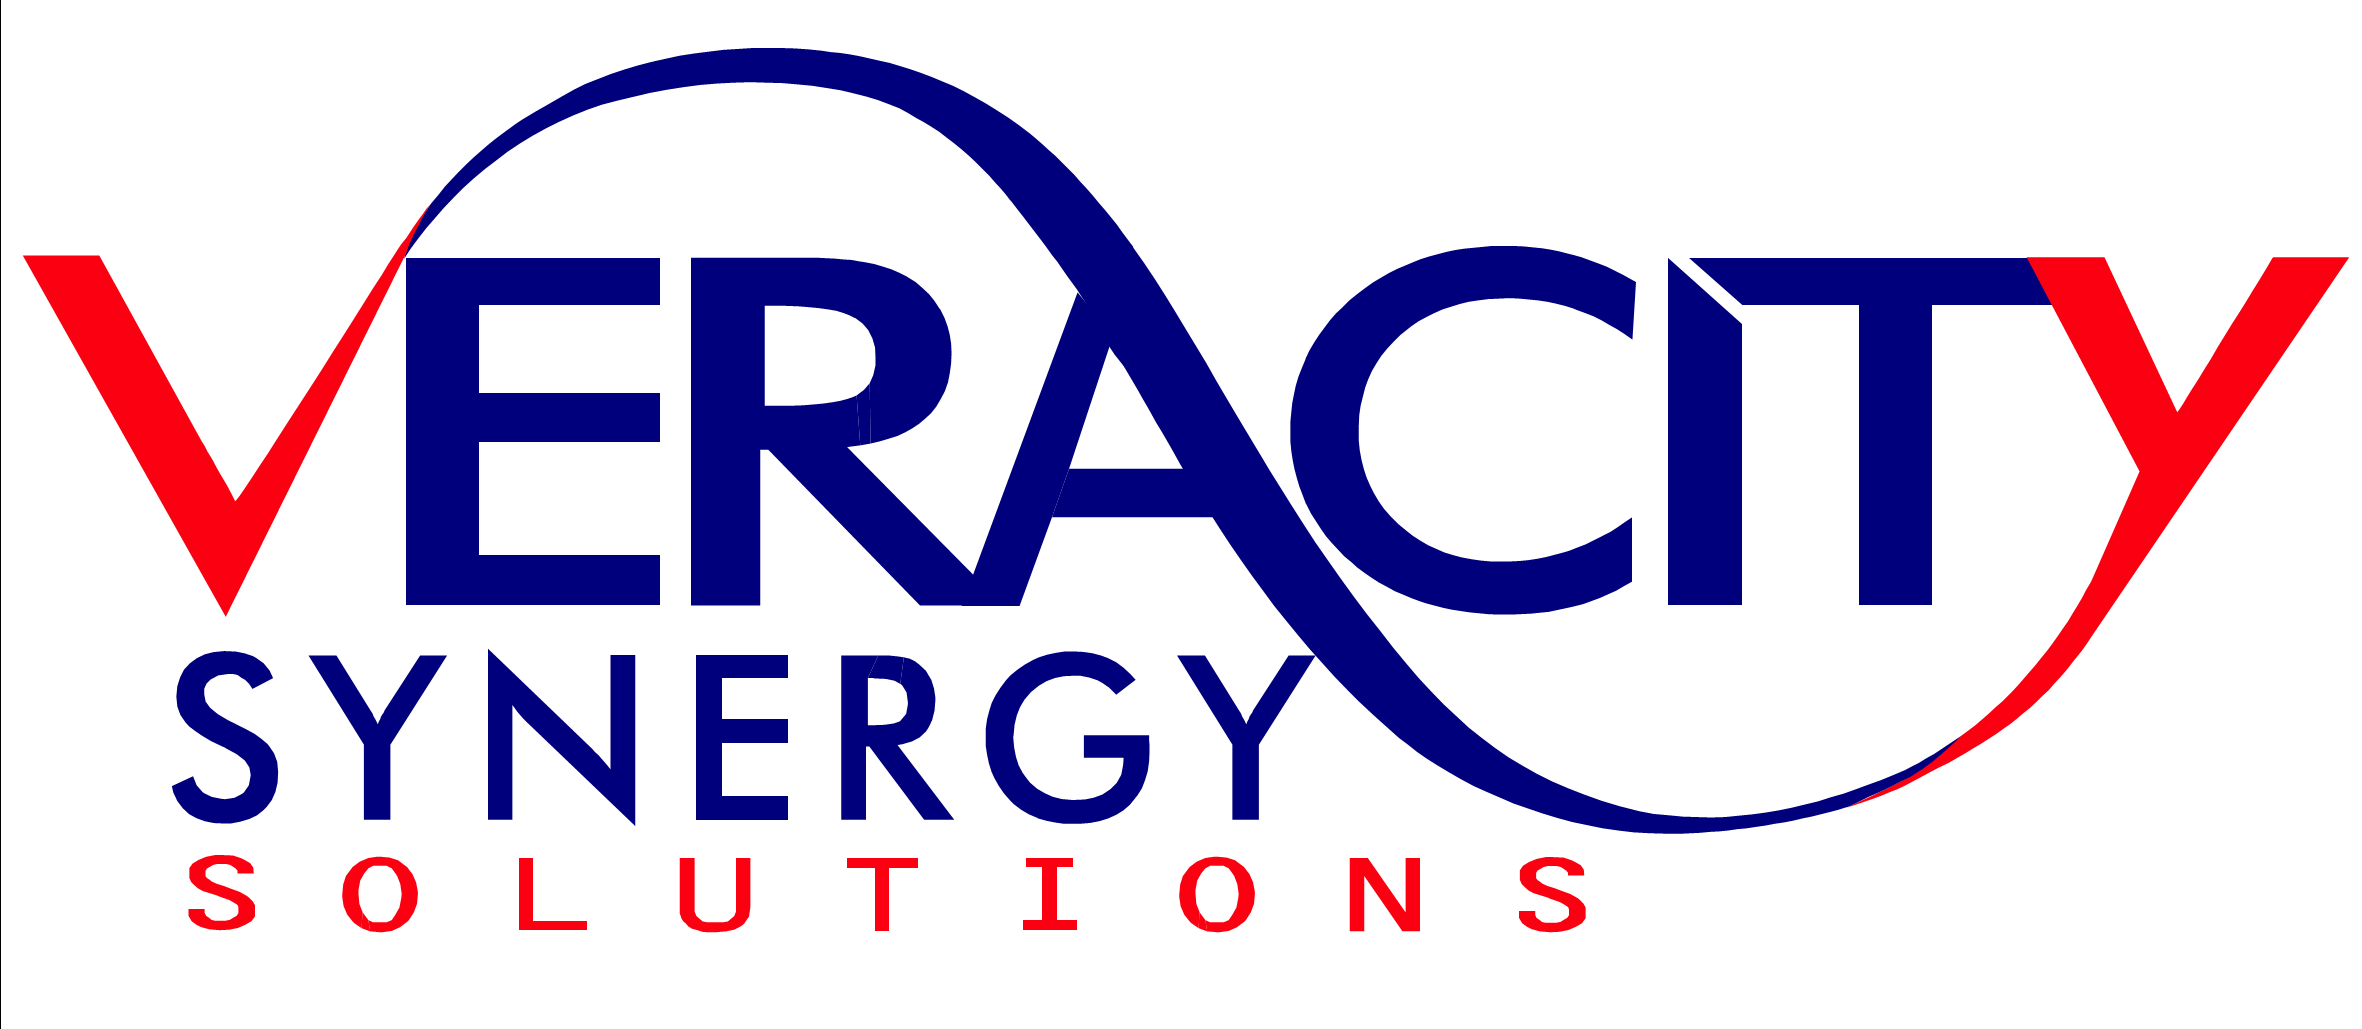 Veracity Synergy Solutions, Inc.